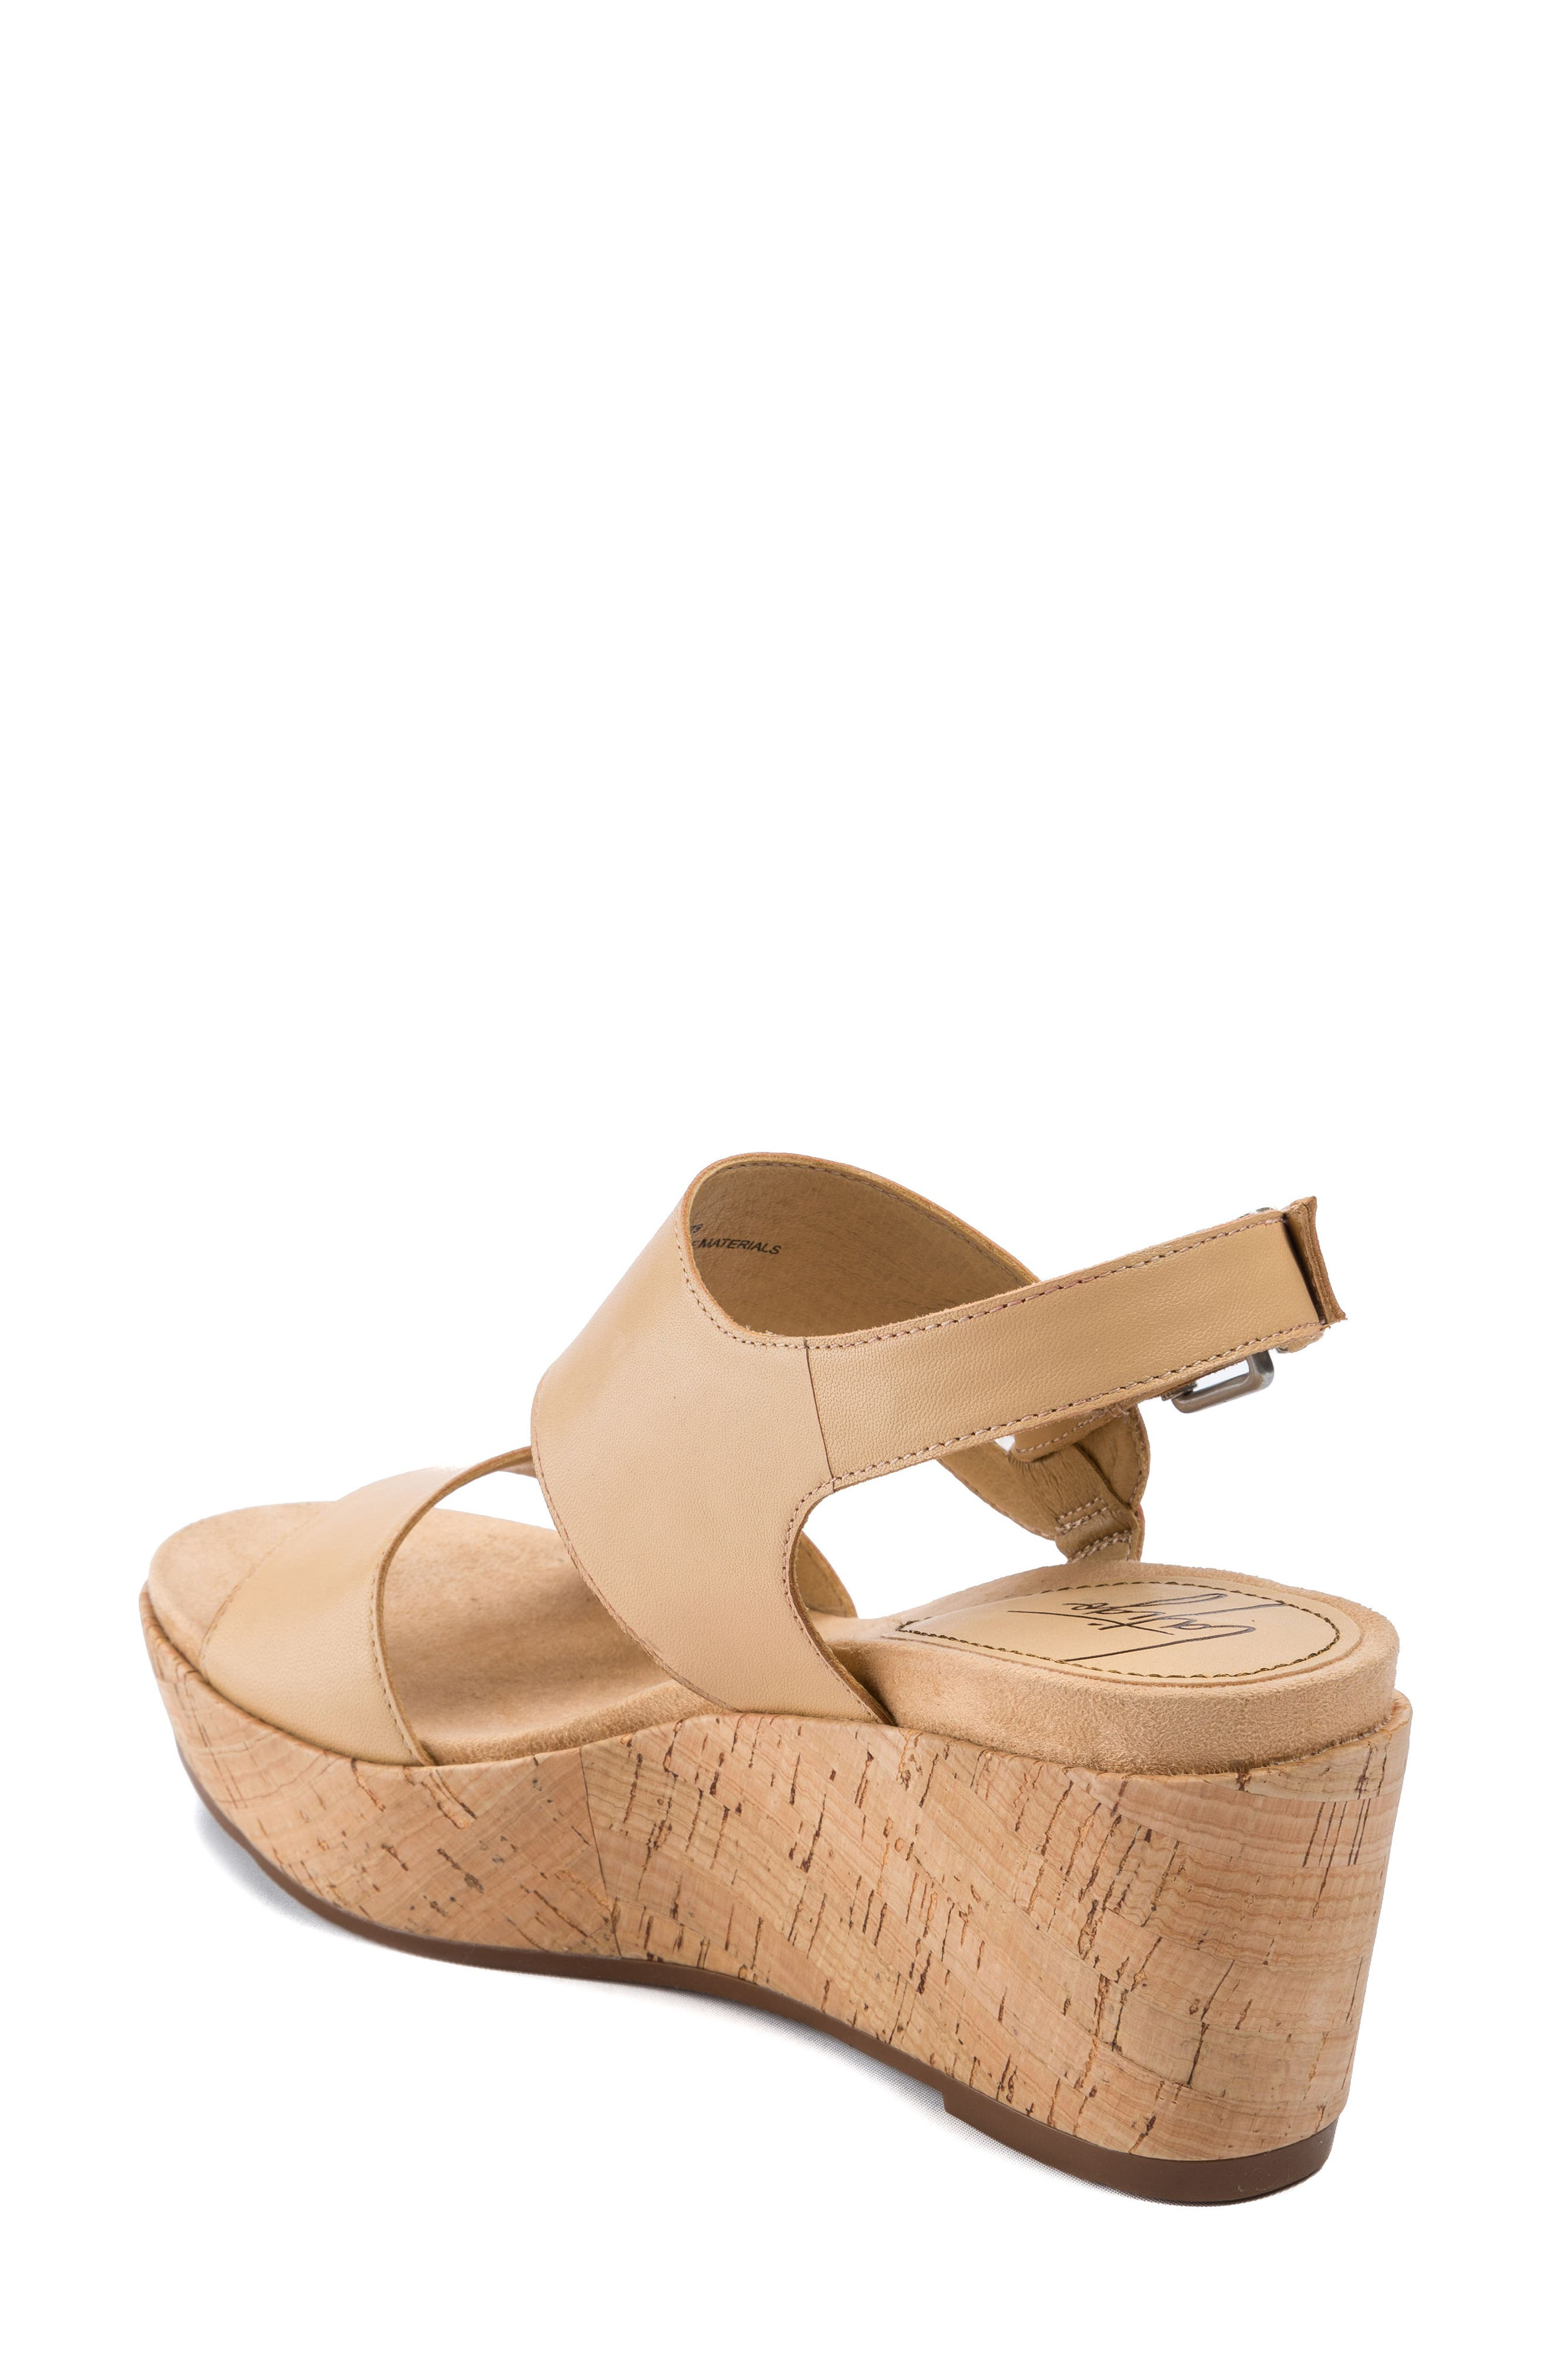 Lauren Platform Wedge Sandal,                             Alternate thumbnail 4, color,